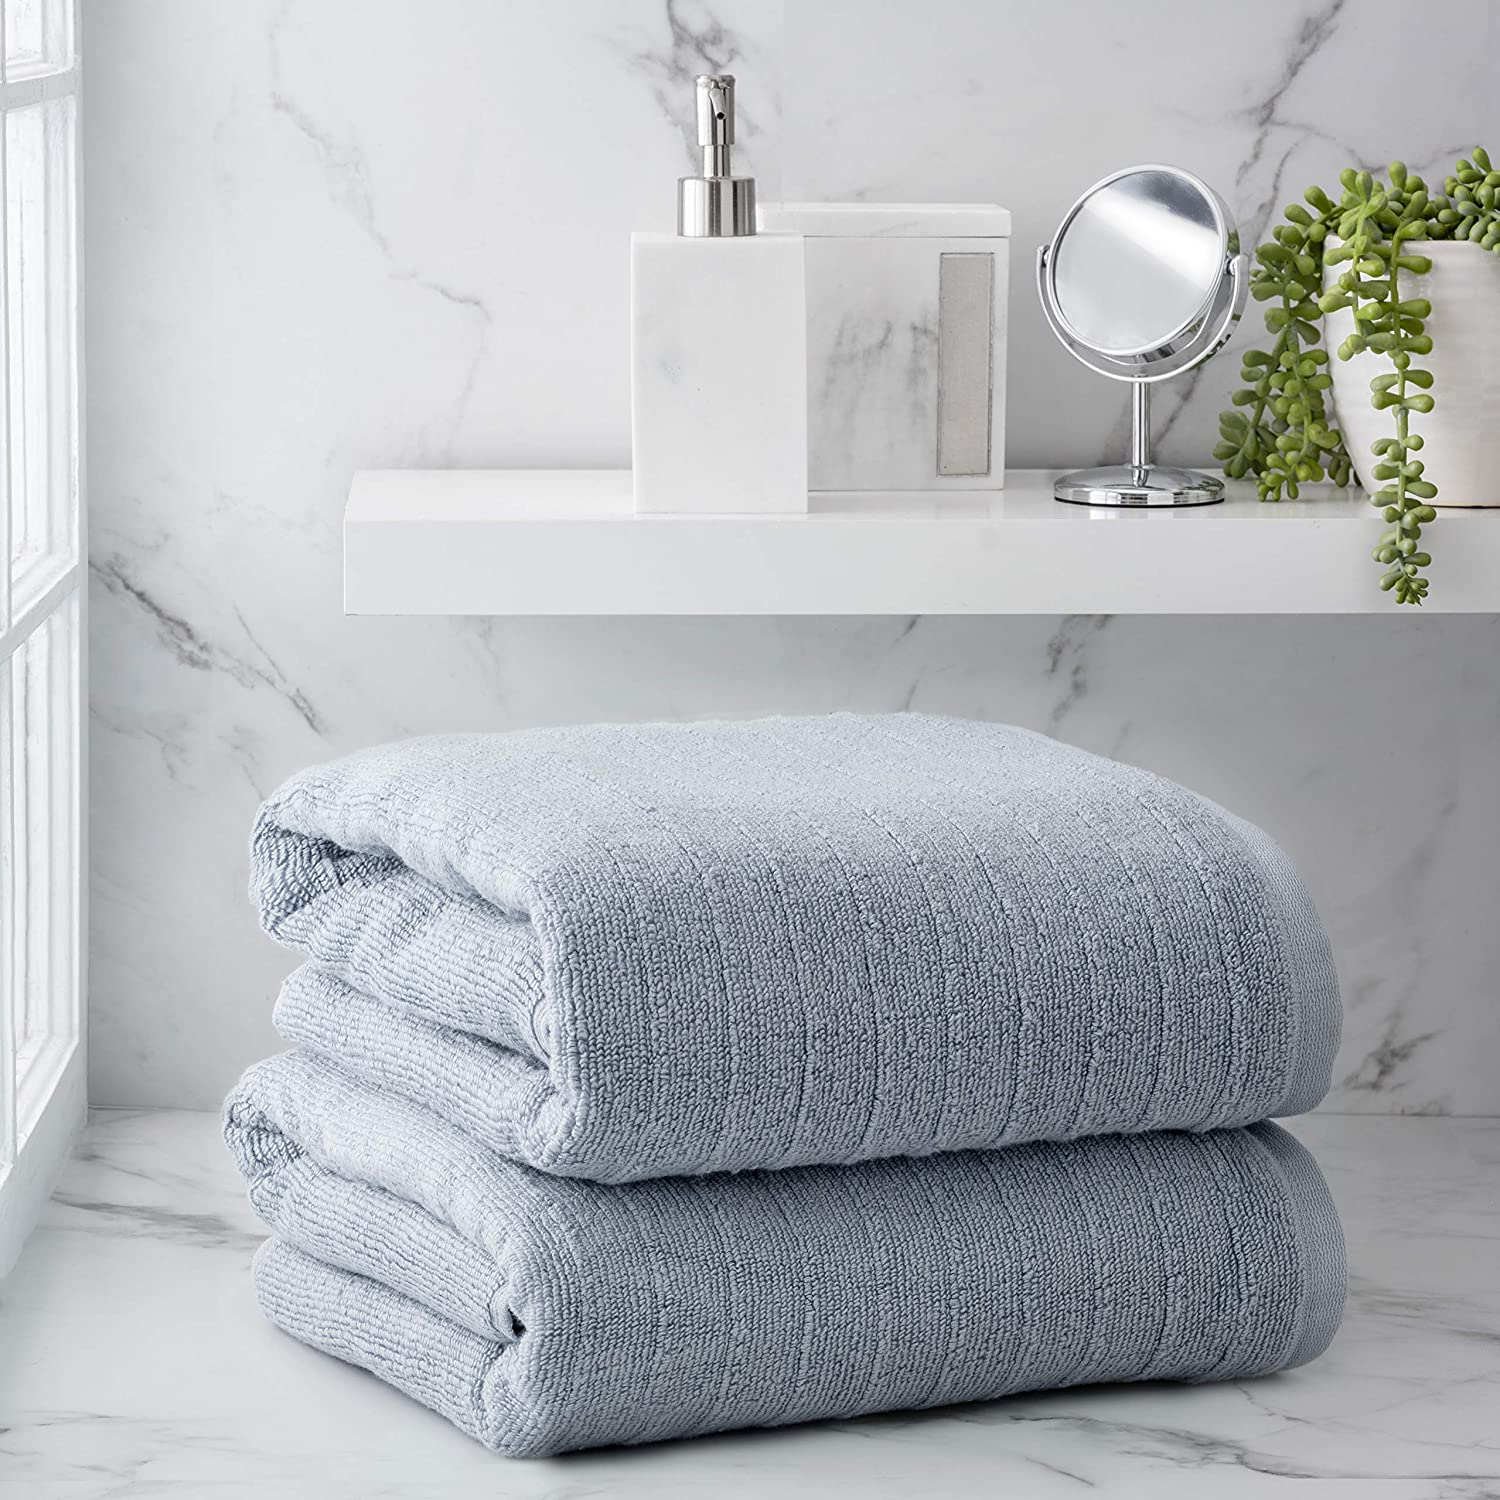 Welhome James 100% Cotton 2 Piece Bath Sheets | Dusty Blue | Stripe Textured | Supersoft & Durable | Highly Absorbent & Quick Dry | Ideal for Everyday Use | 450 GSM | Machine Washable: Home & Kitchen